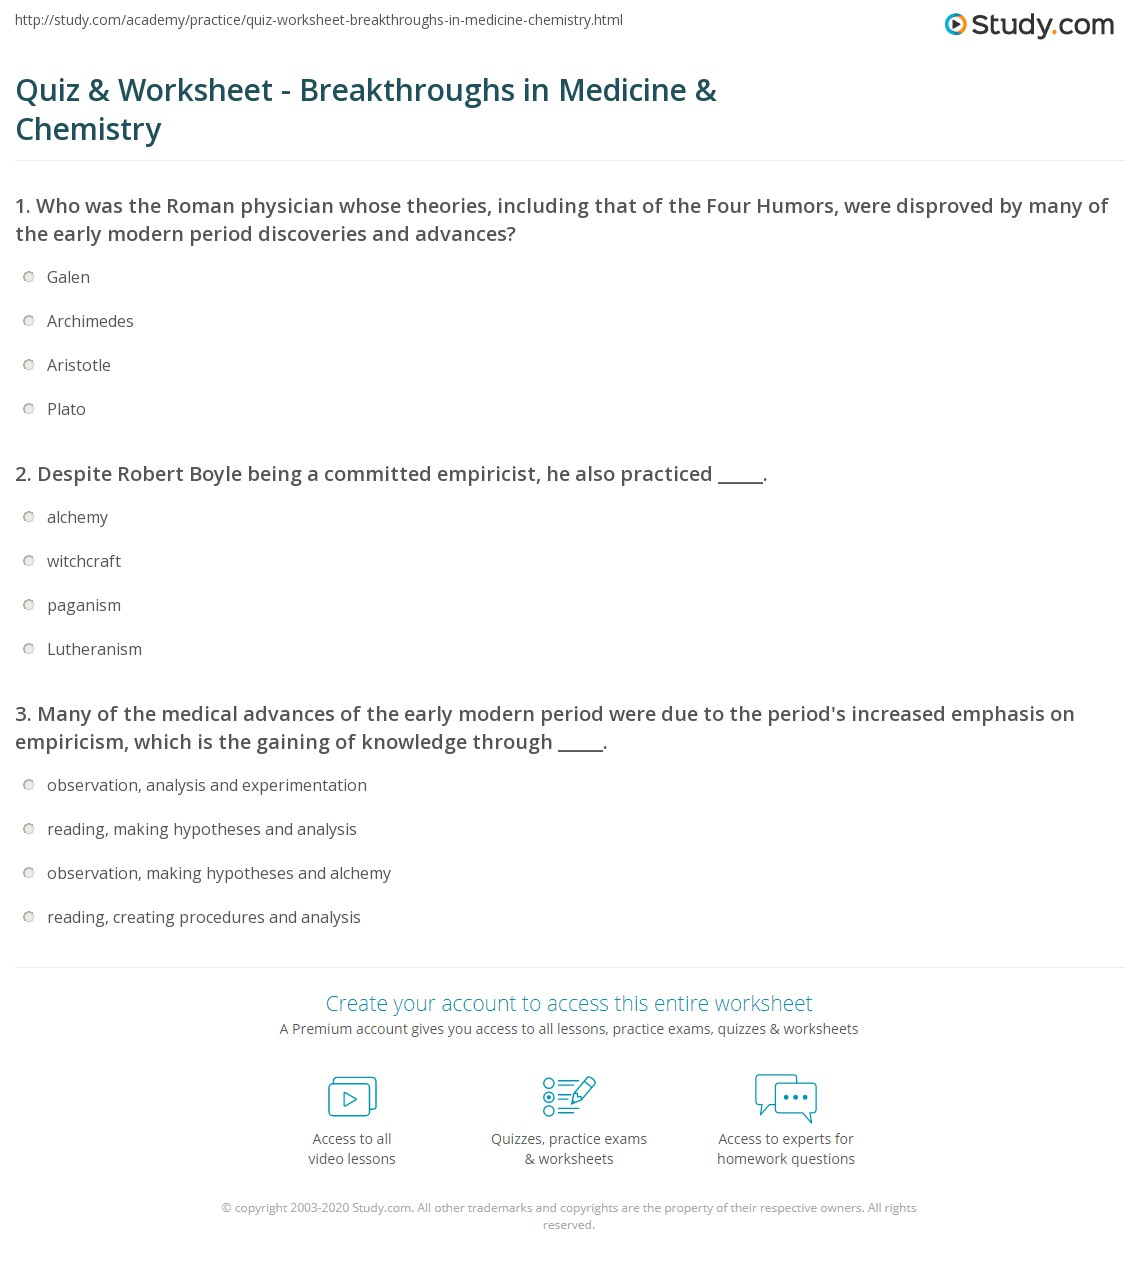 Quiz & Worksheet - Breakthroughs in Medicine & Chemistry  Study.com math worksheets, education, printable worksheets, worksheets for teachers, and alphabet worksheets Currency Conversions Worksheet 2 1394 x 1140